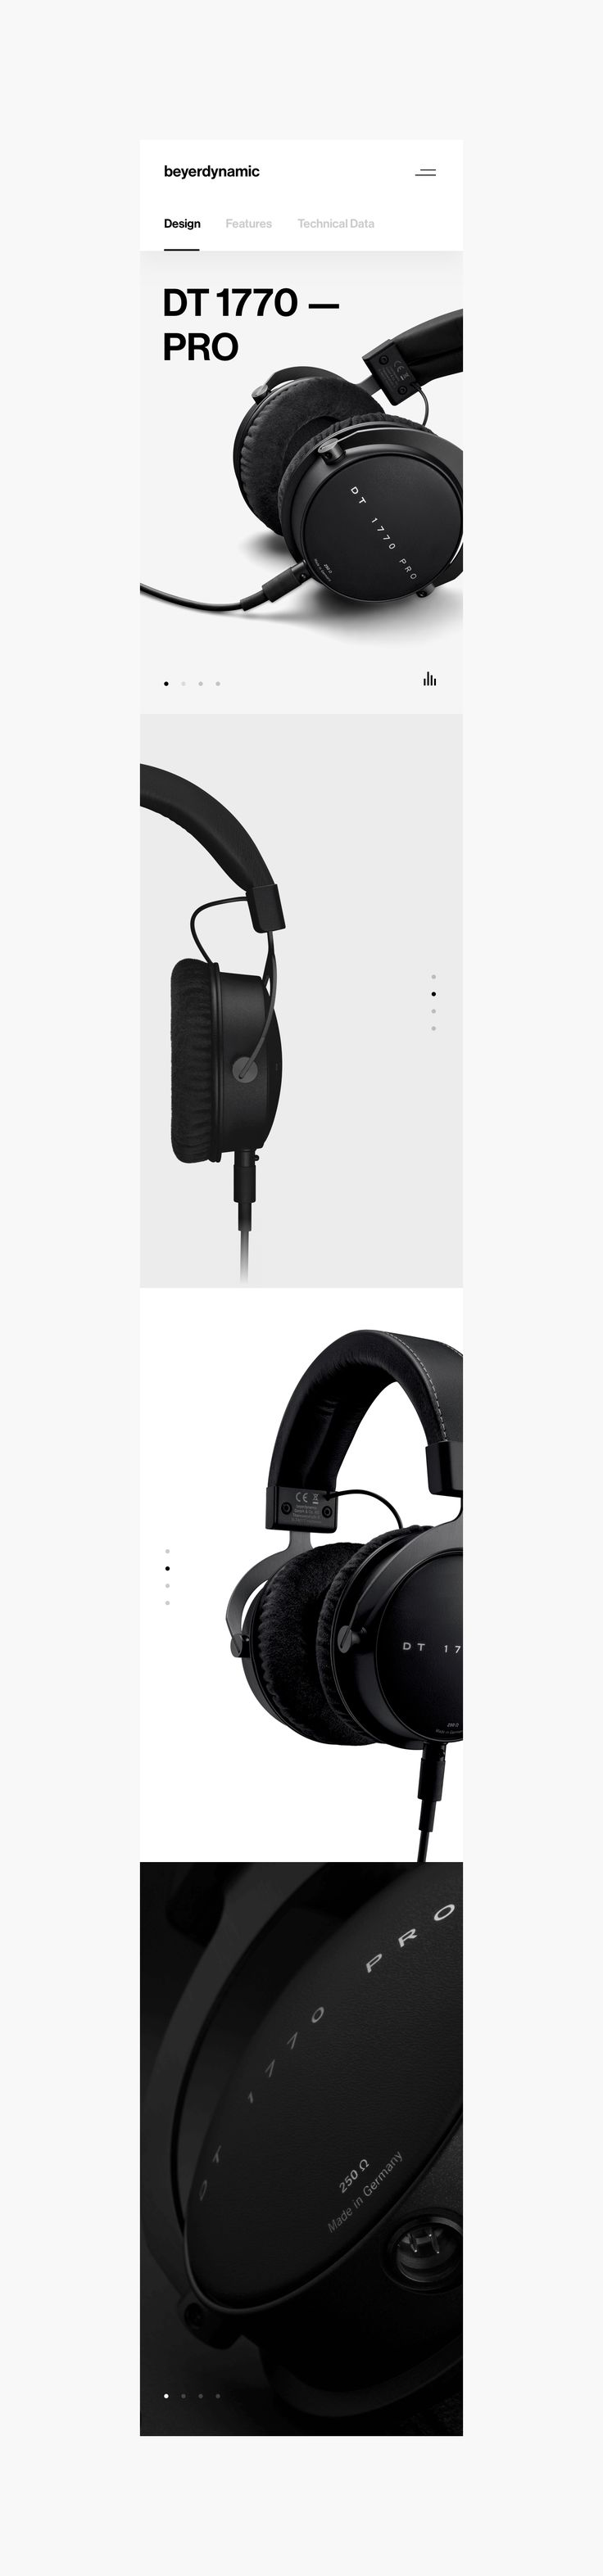 Beyerdynamic // BRDNMC on Behance